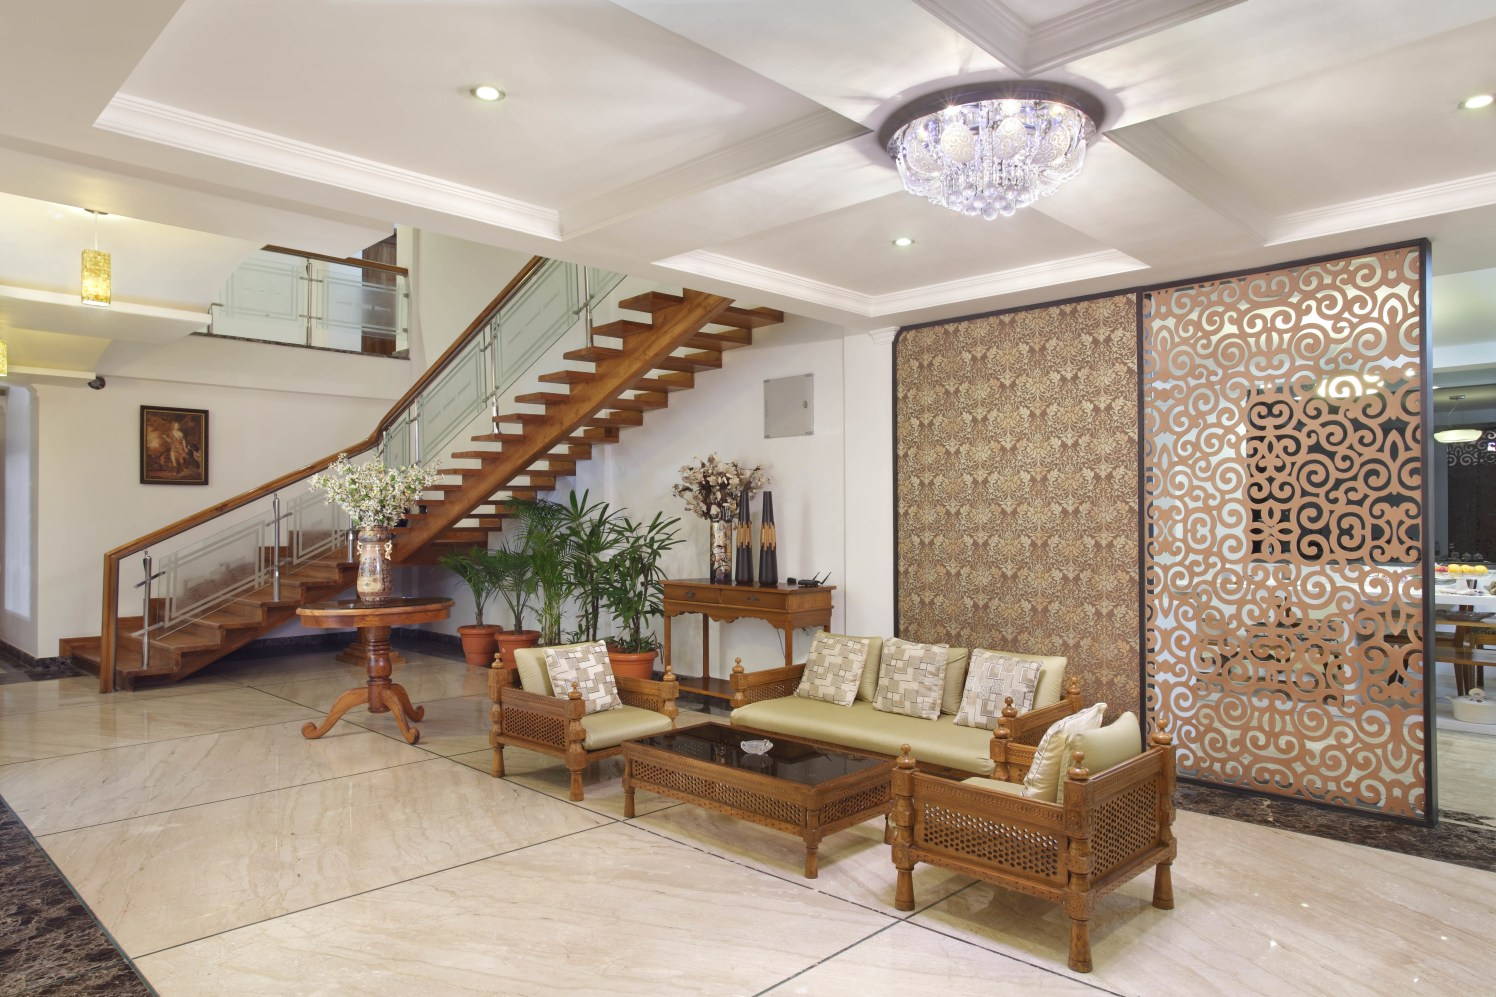 Traditional Style Living Room With Marble Flooring by Prashant Ghosh Living-room Traditional | Interior Design Photos & Ideas